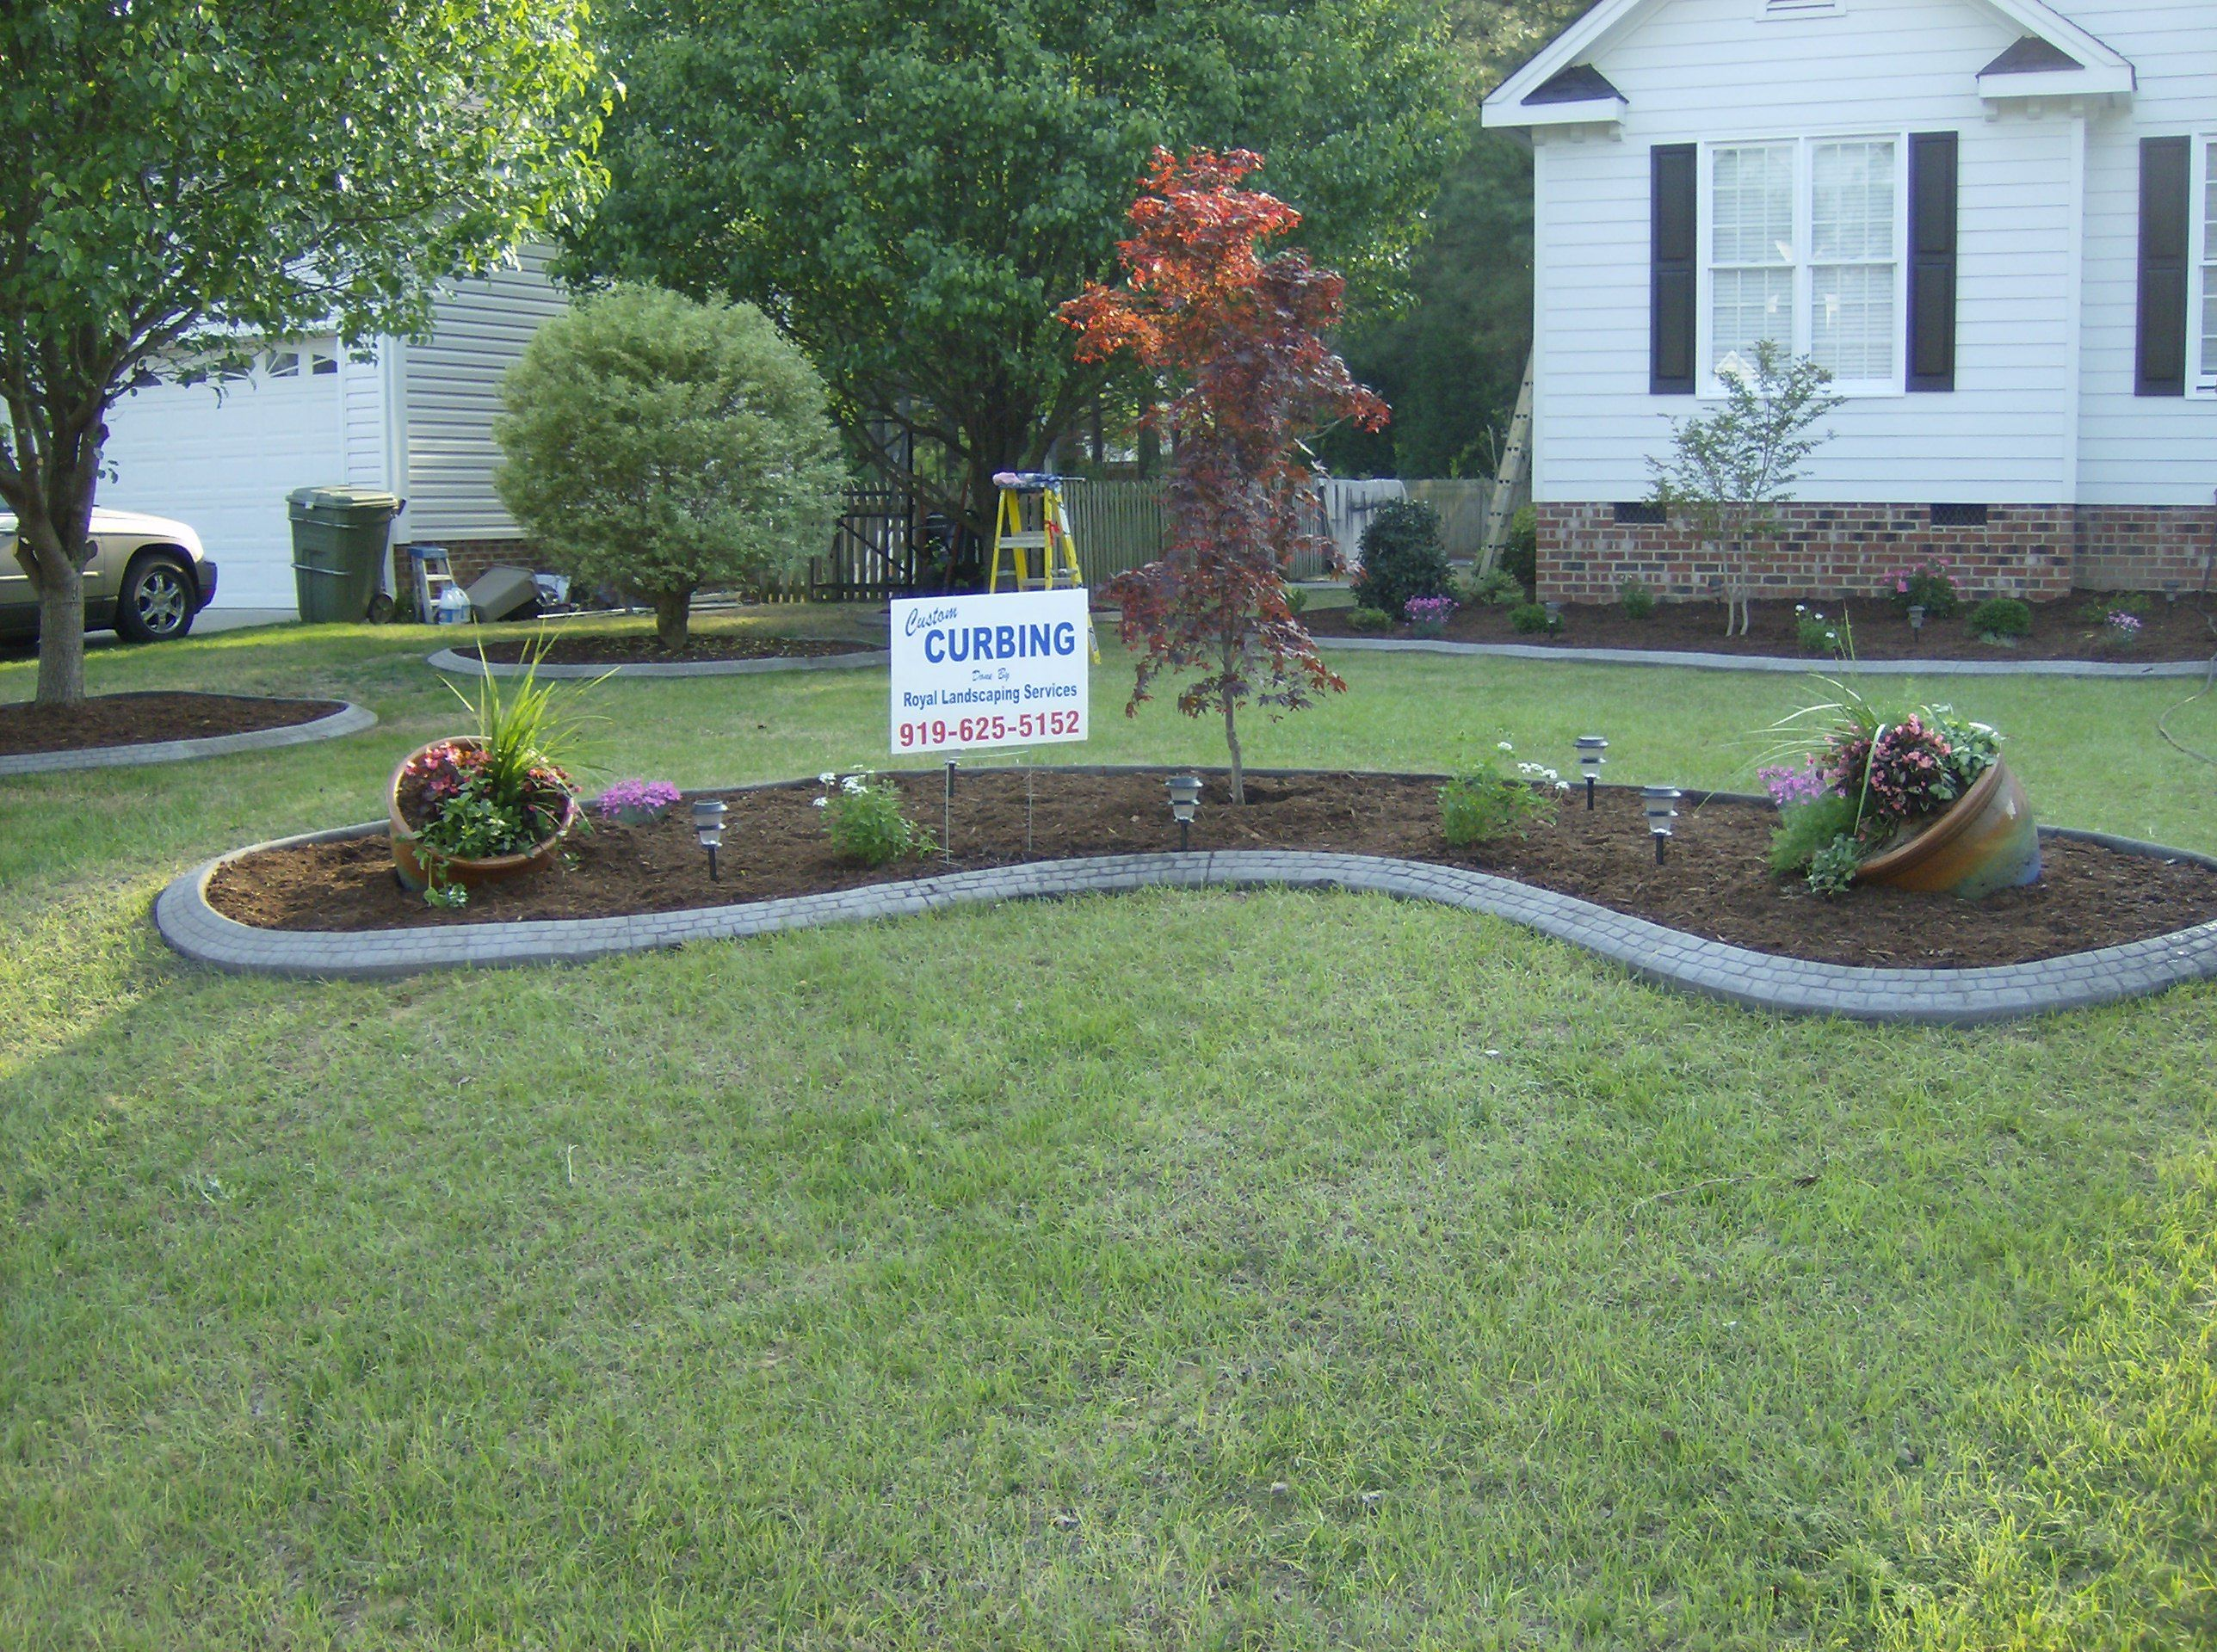 Flowerbed borders royal landscaping services and curbing for Edging flower beds with edger